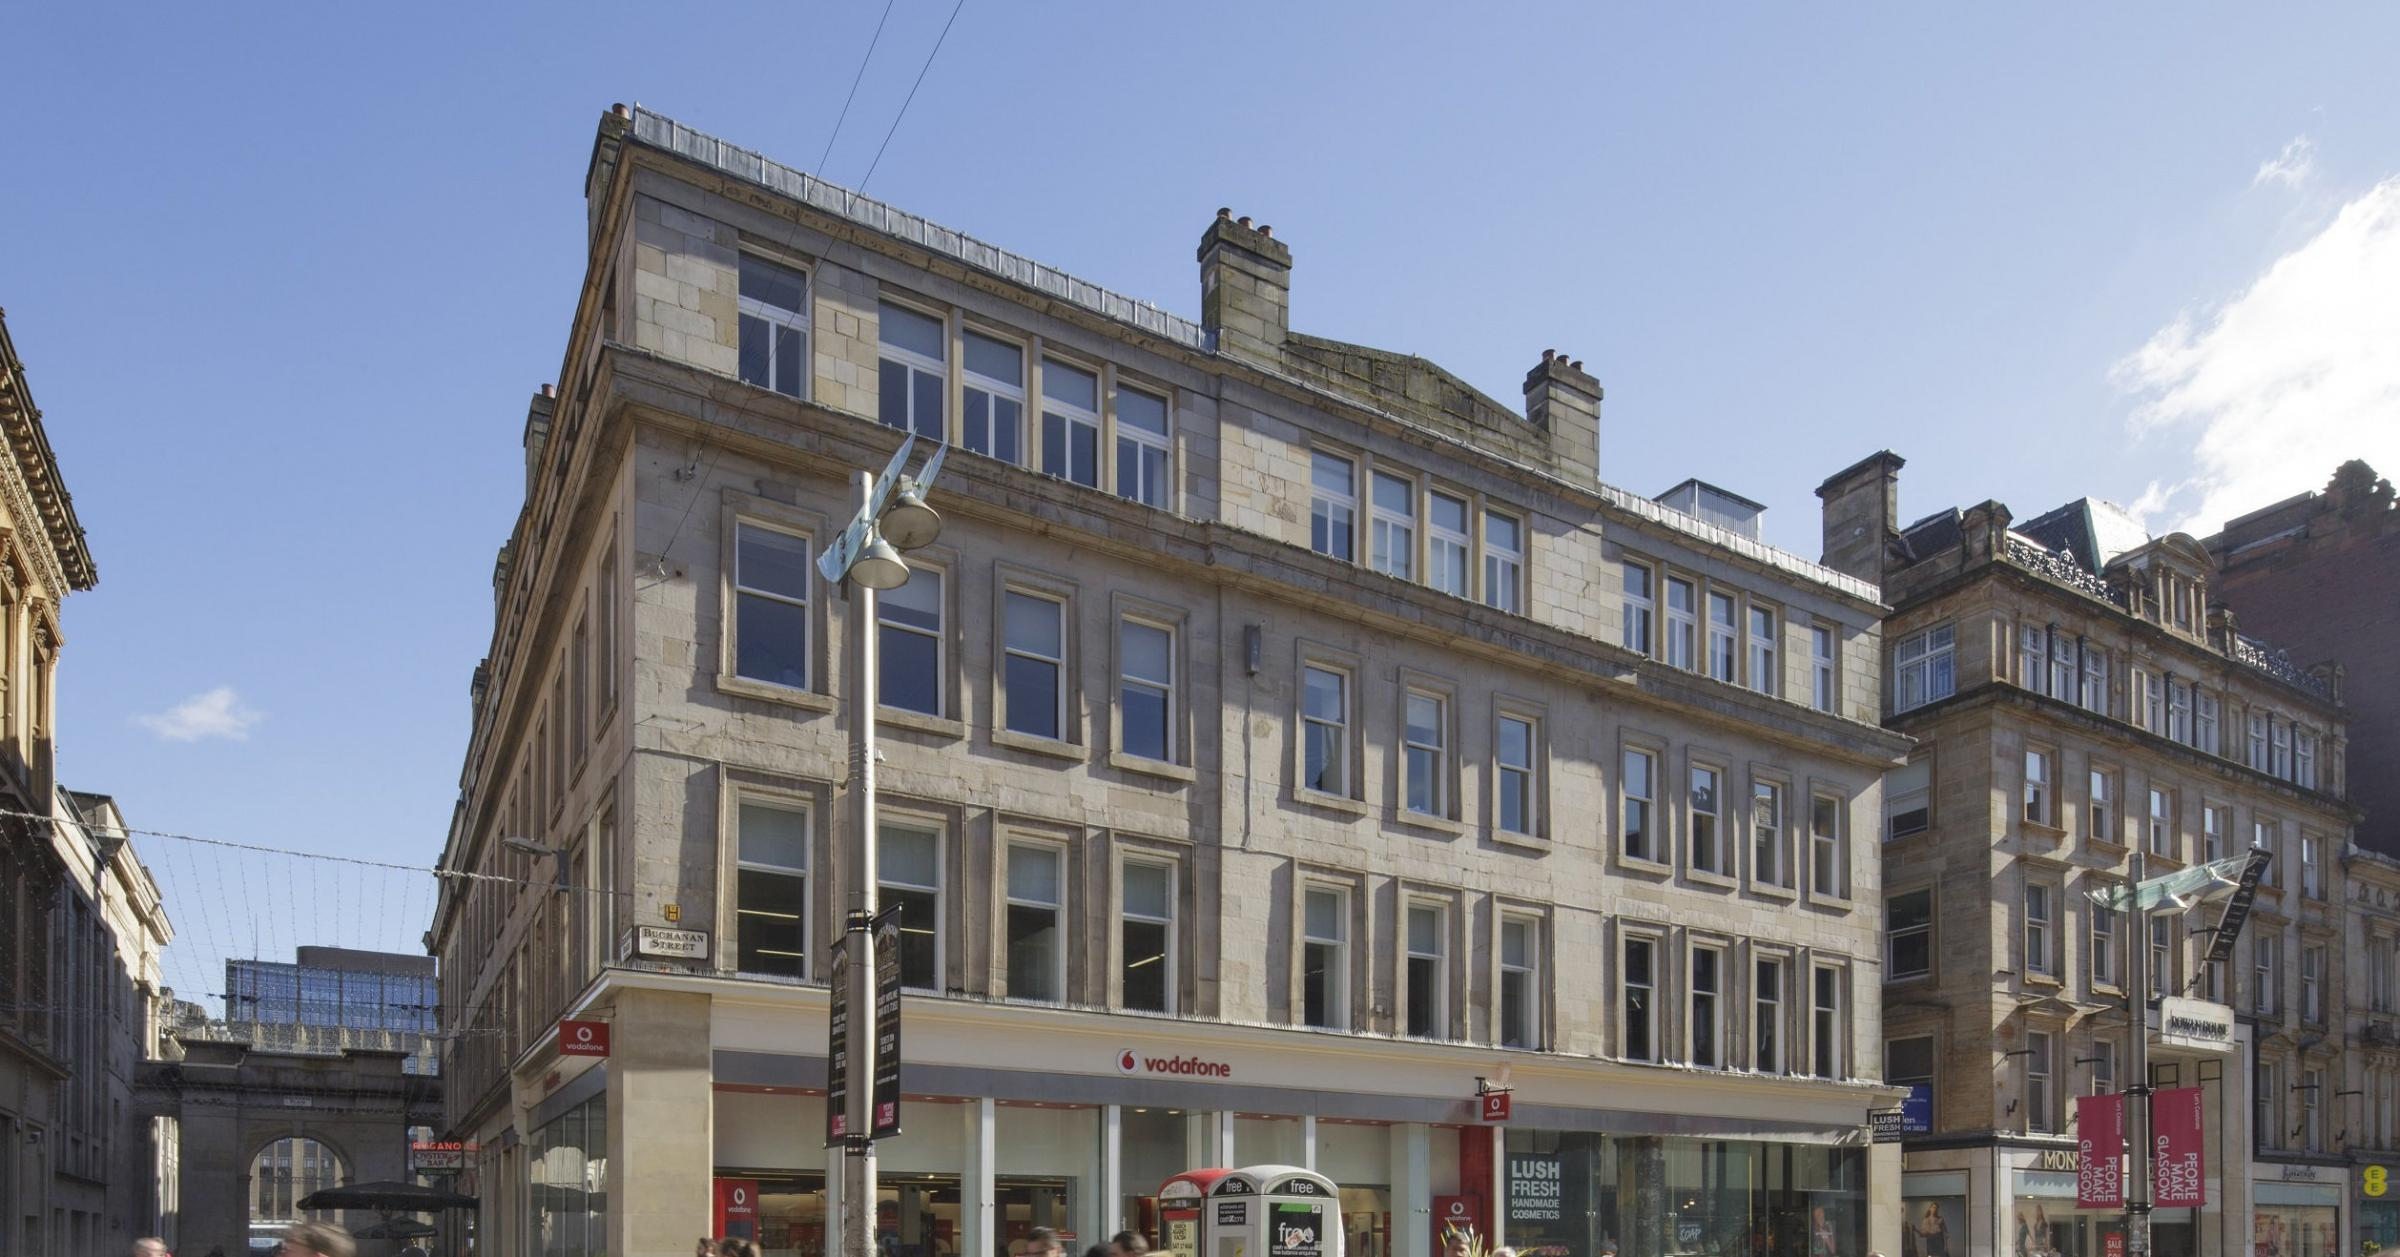 The largest deal of the quarter was Buchanan Street in Glasgow